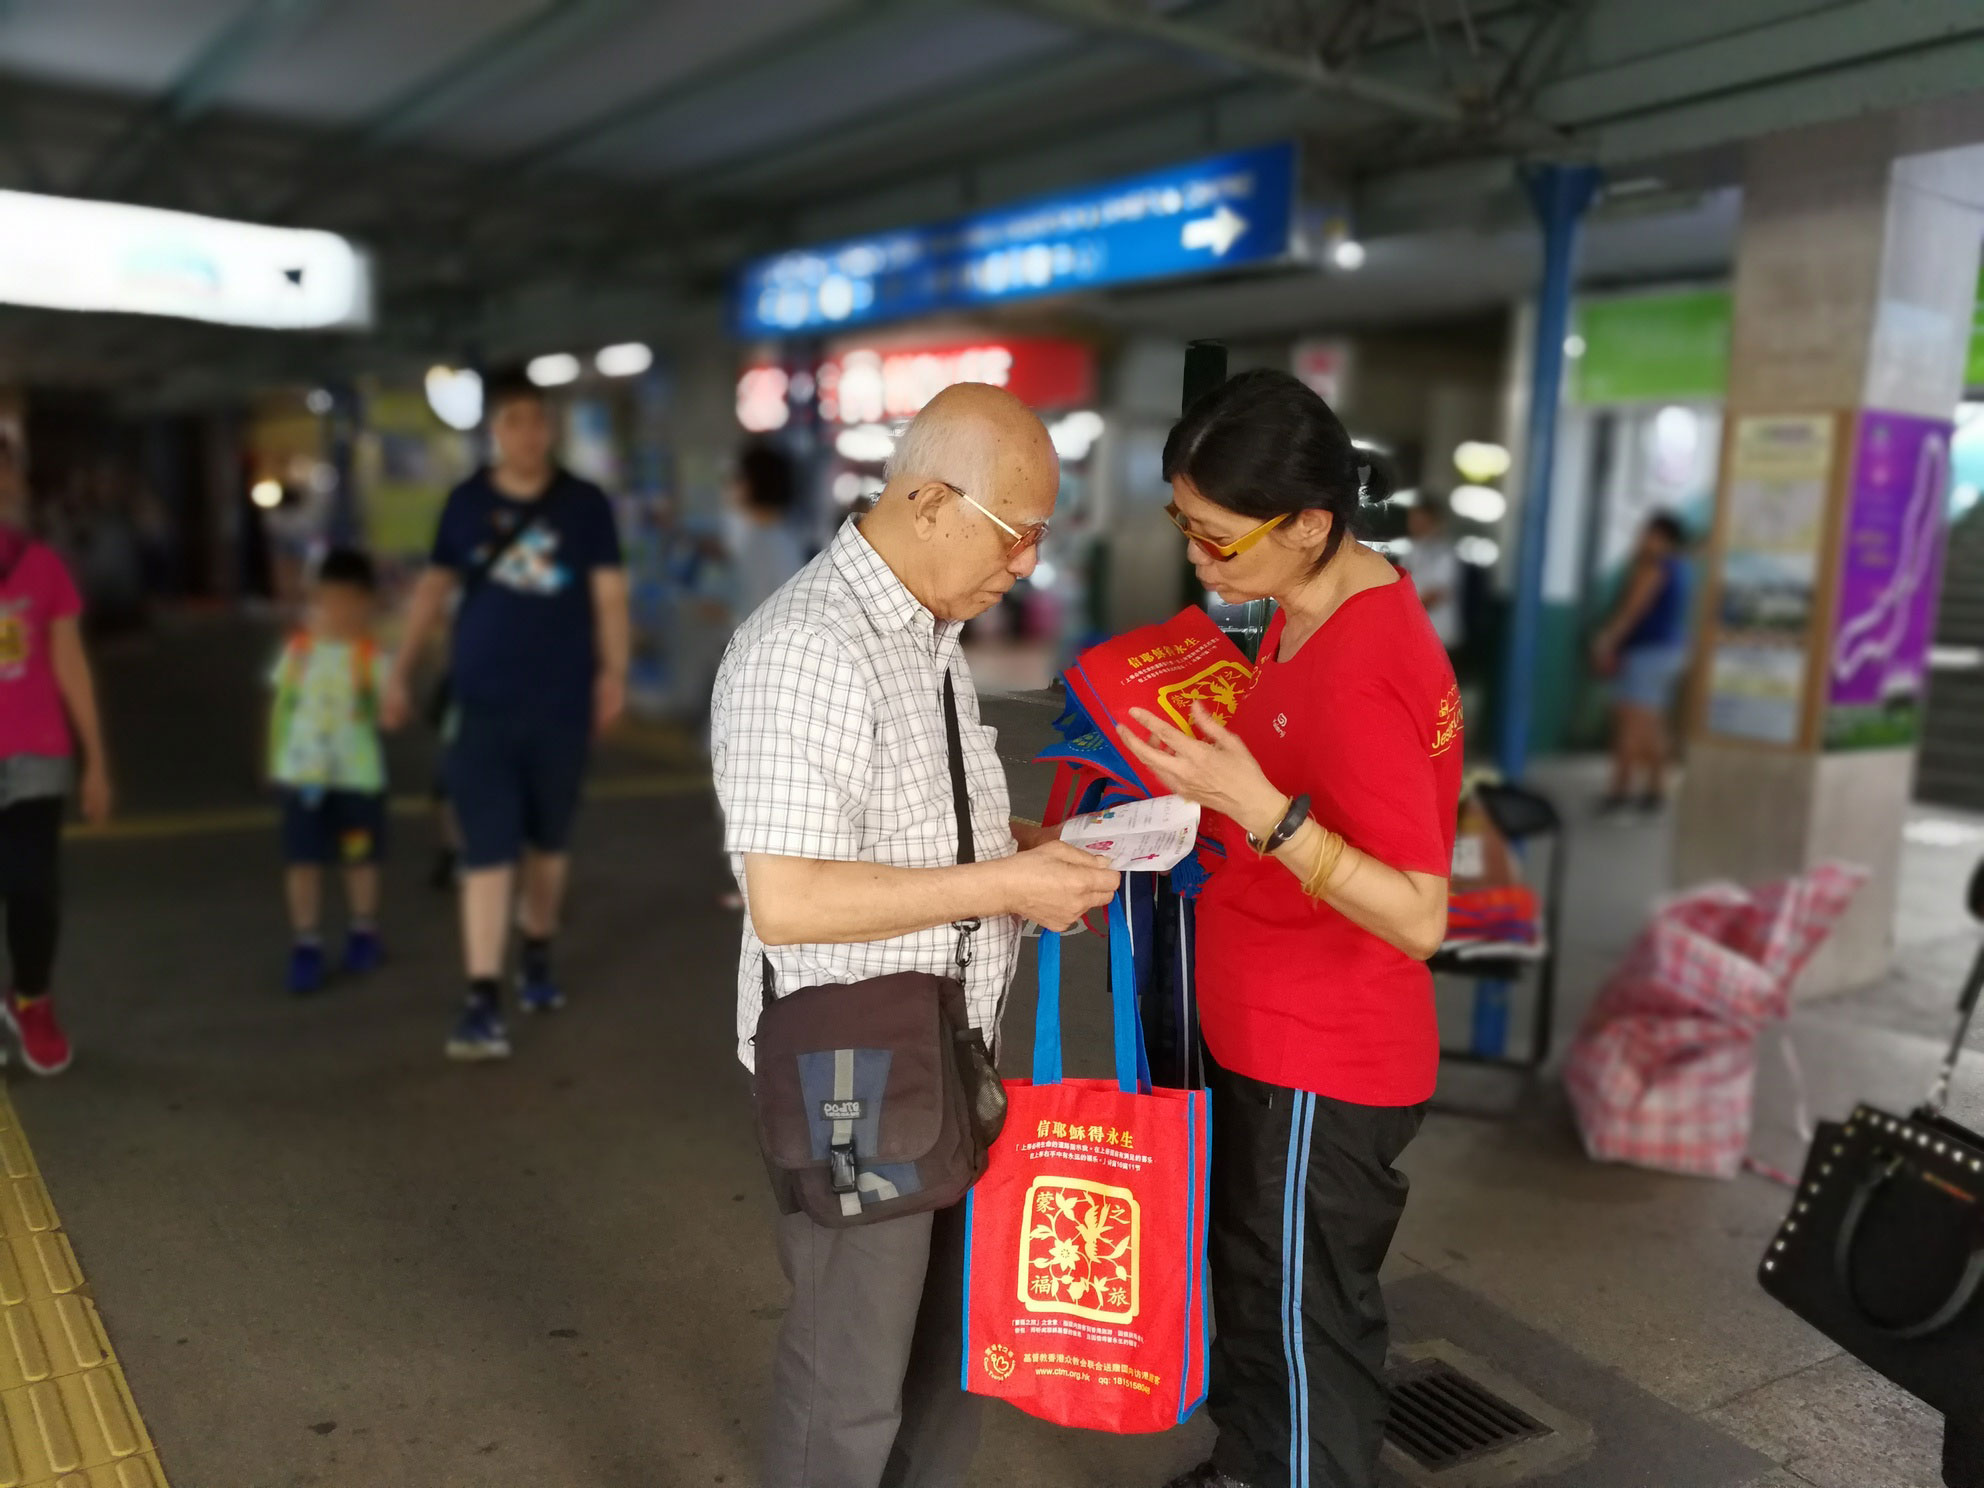 Chinese Tourist Ministry - Chinese Tourists Ministry in Hong Kong and Macau distributing selections of Gospel literature in Chinese.